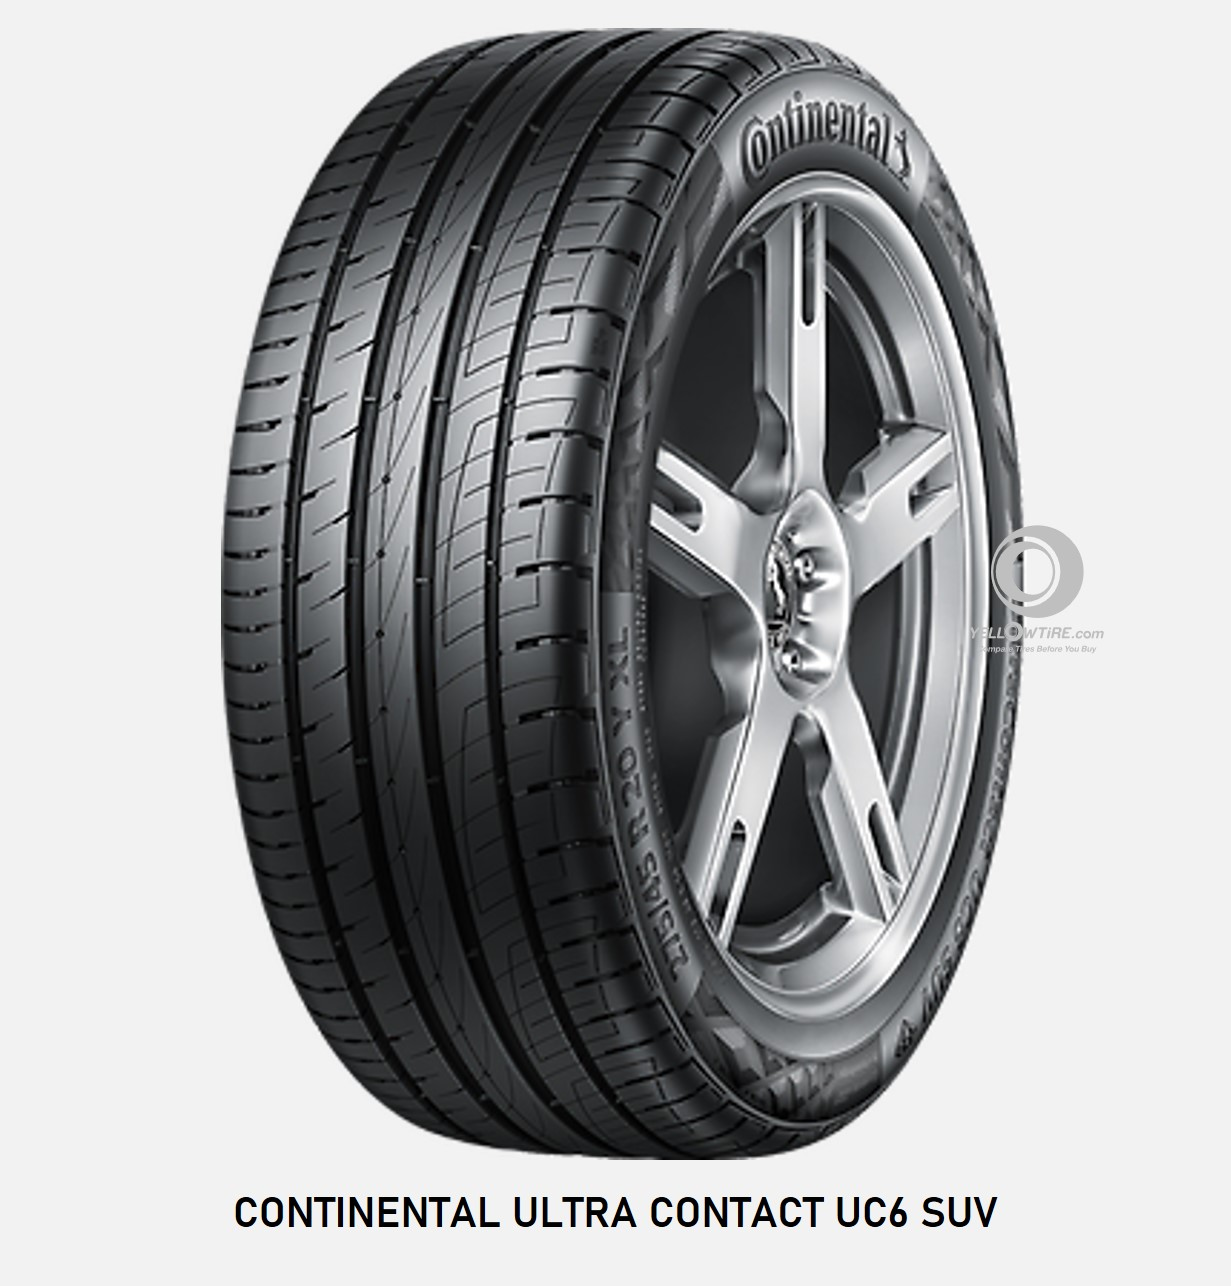 CONTINENTAL ULTRA CONTACT UC6 SUV